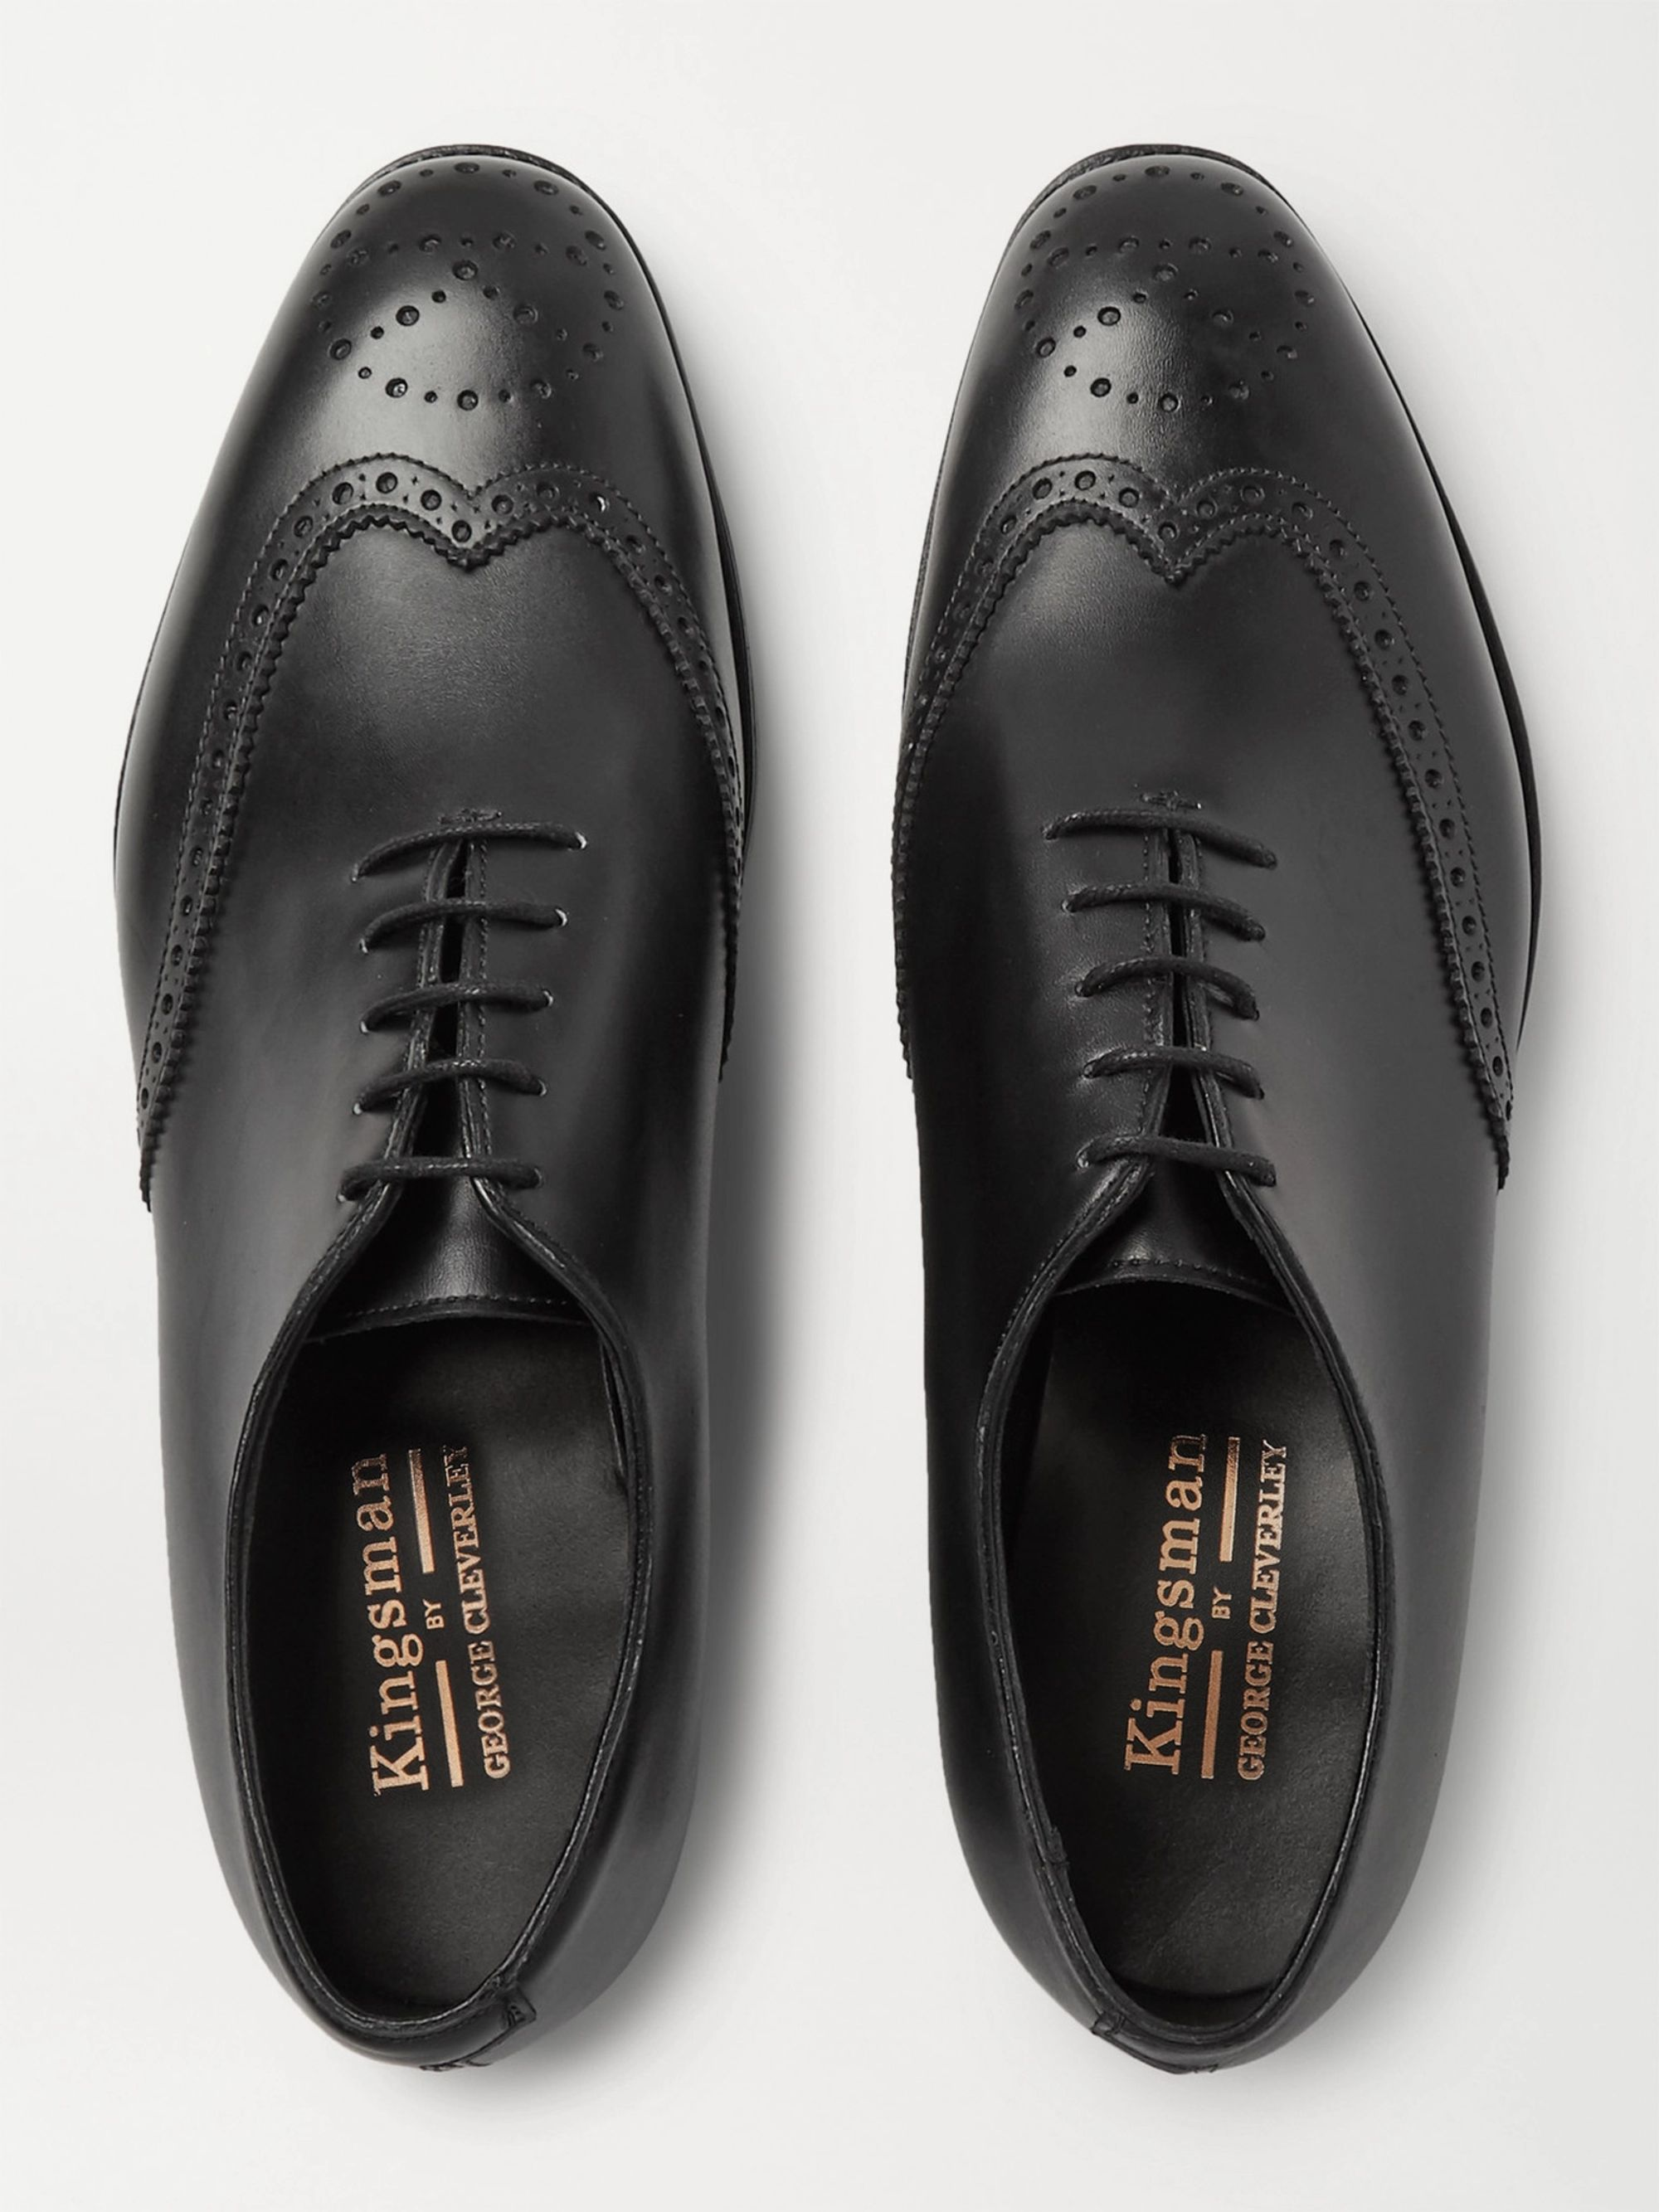 Kingsman + George Cleverley Leather Brogues